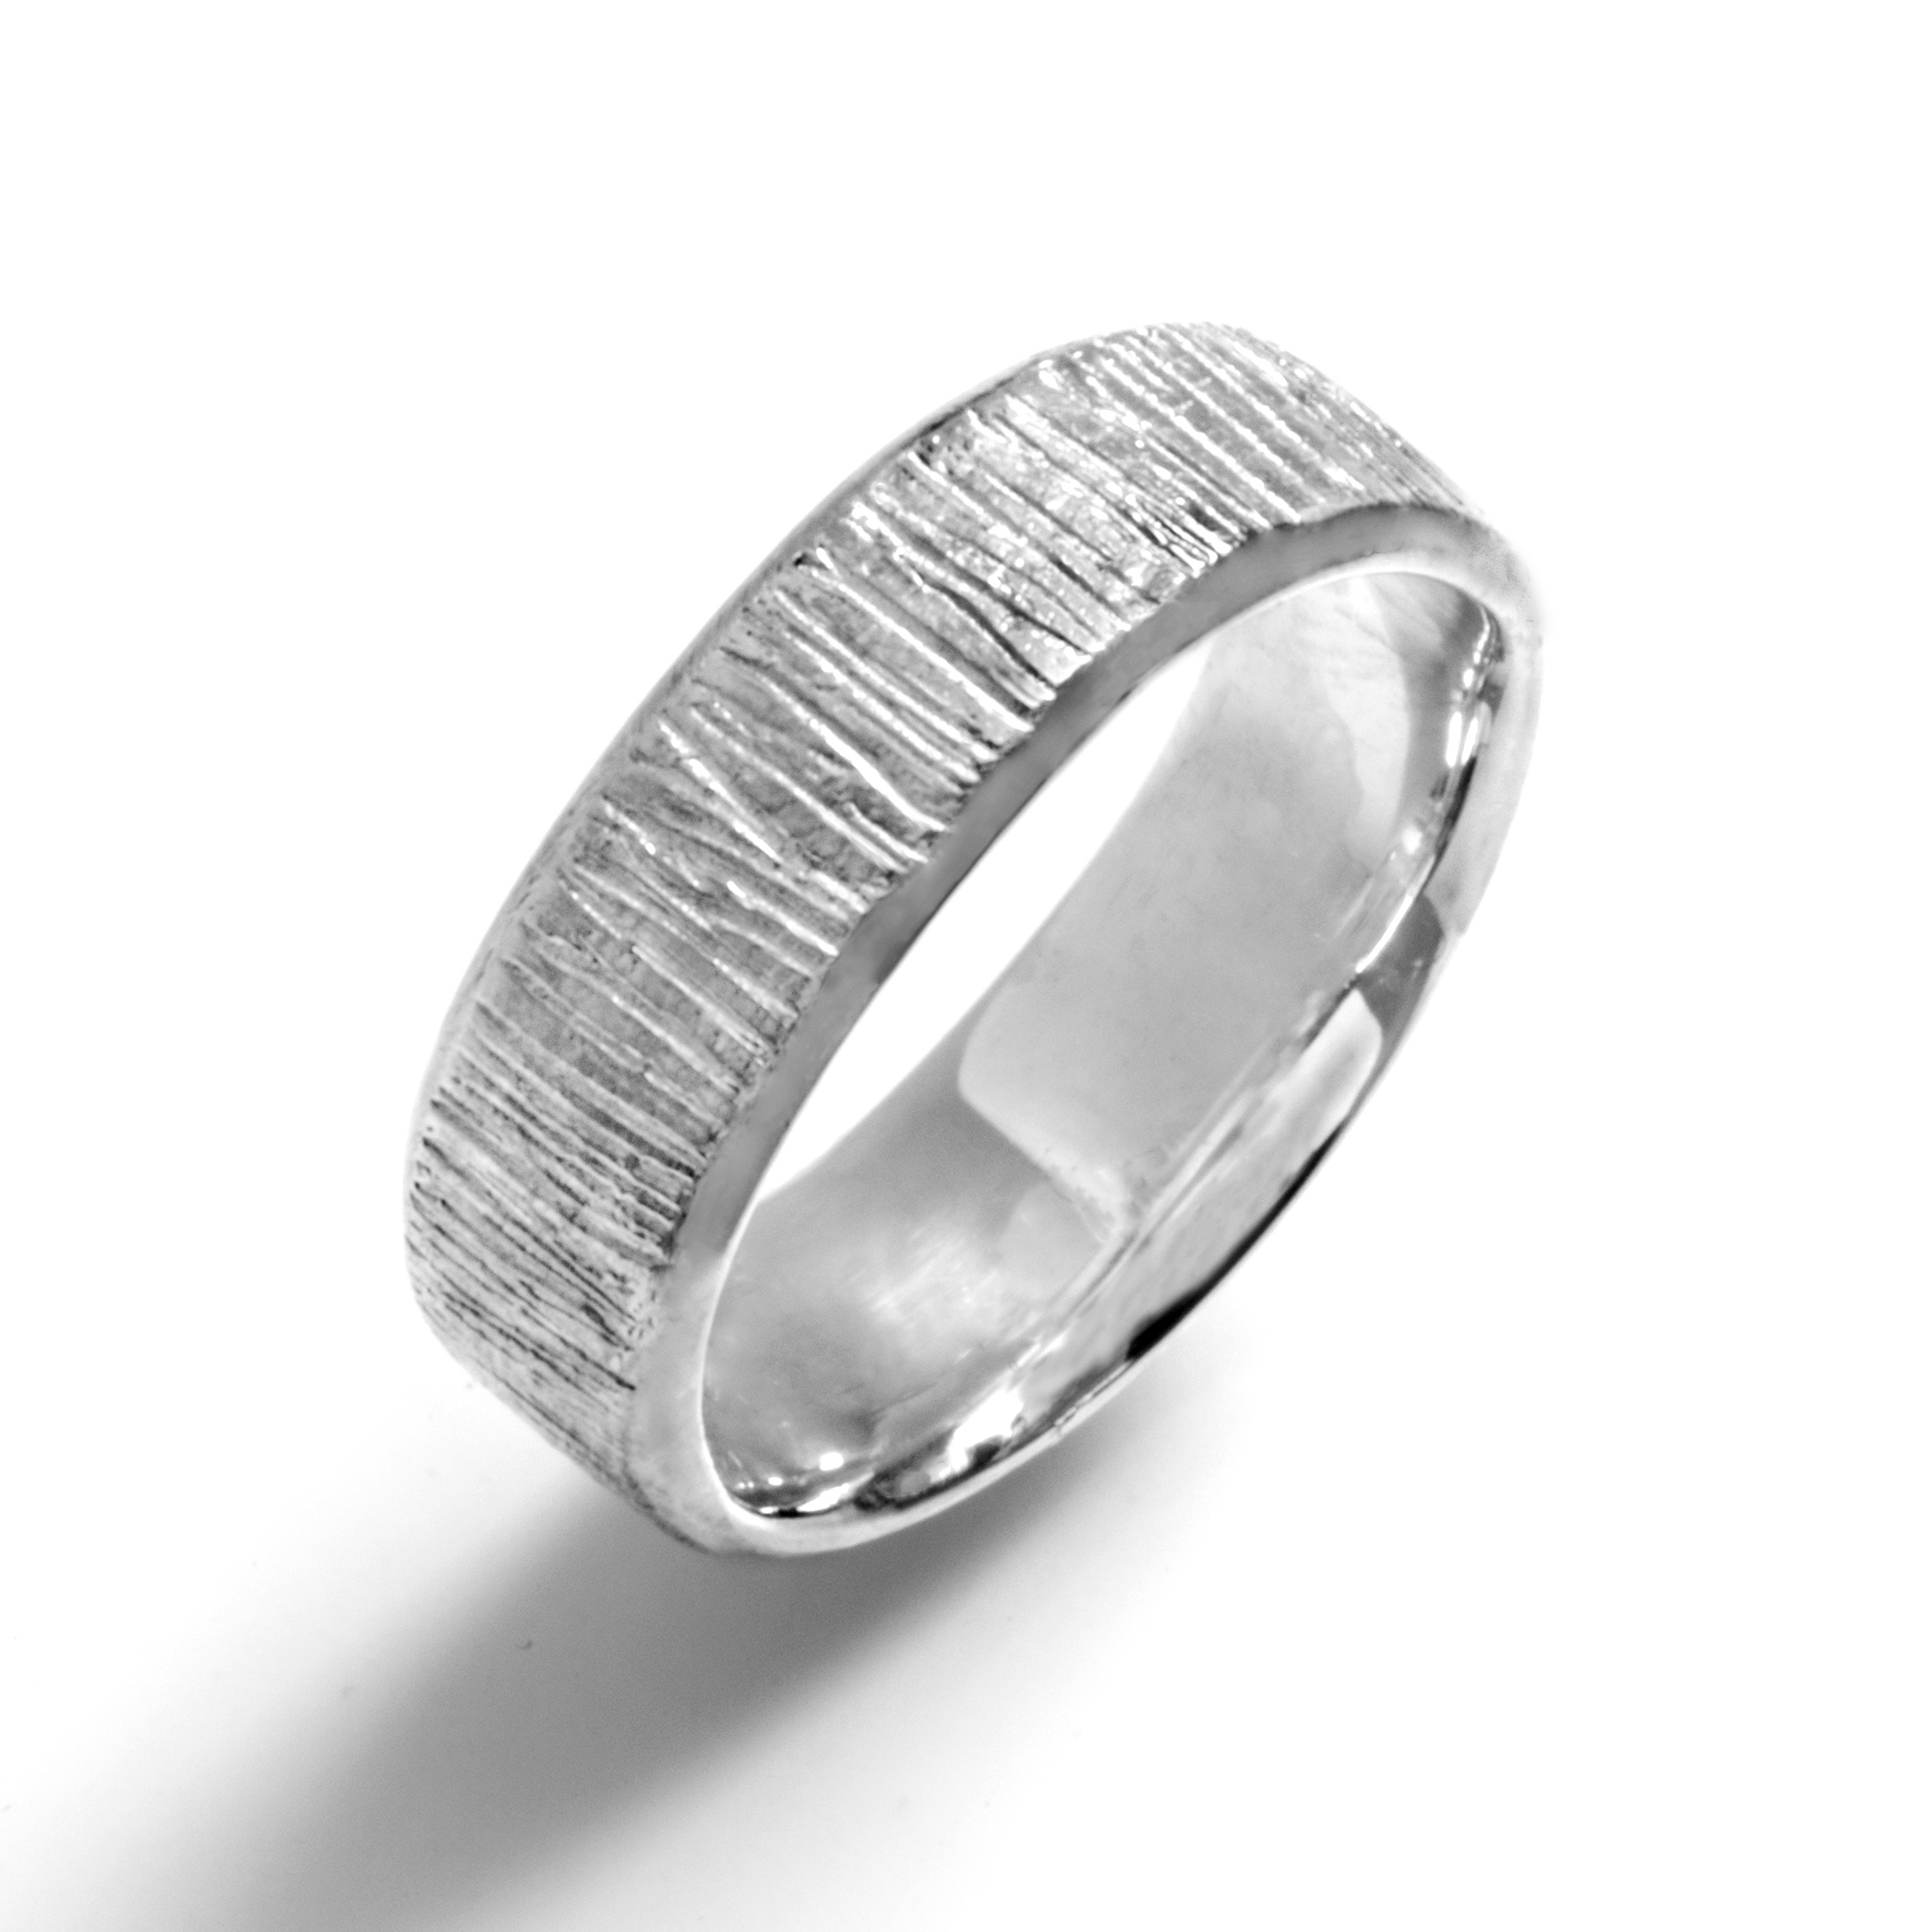 Textured Bevel Ring.jpg